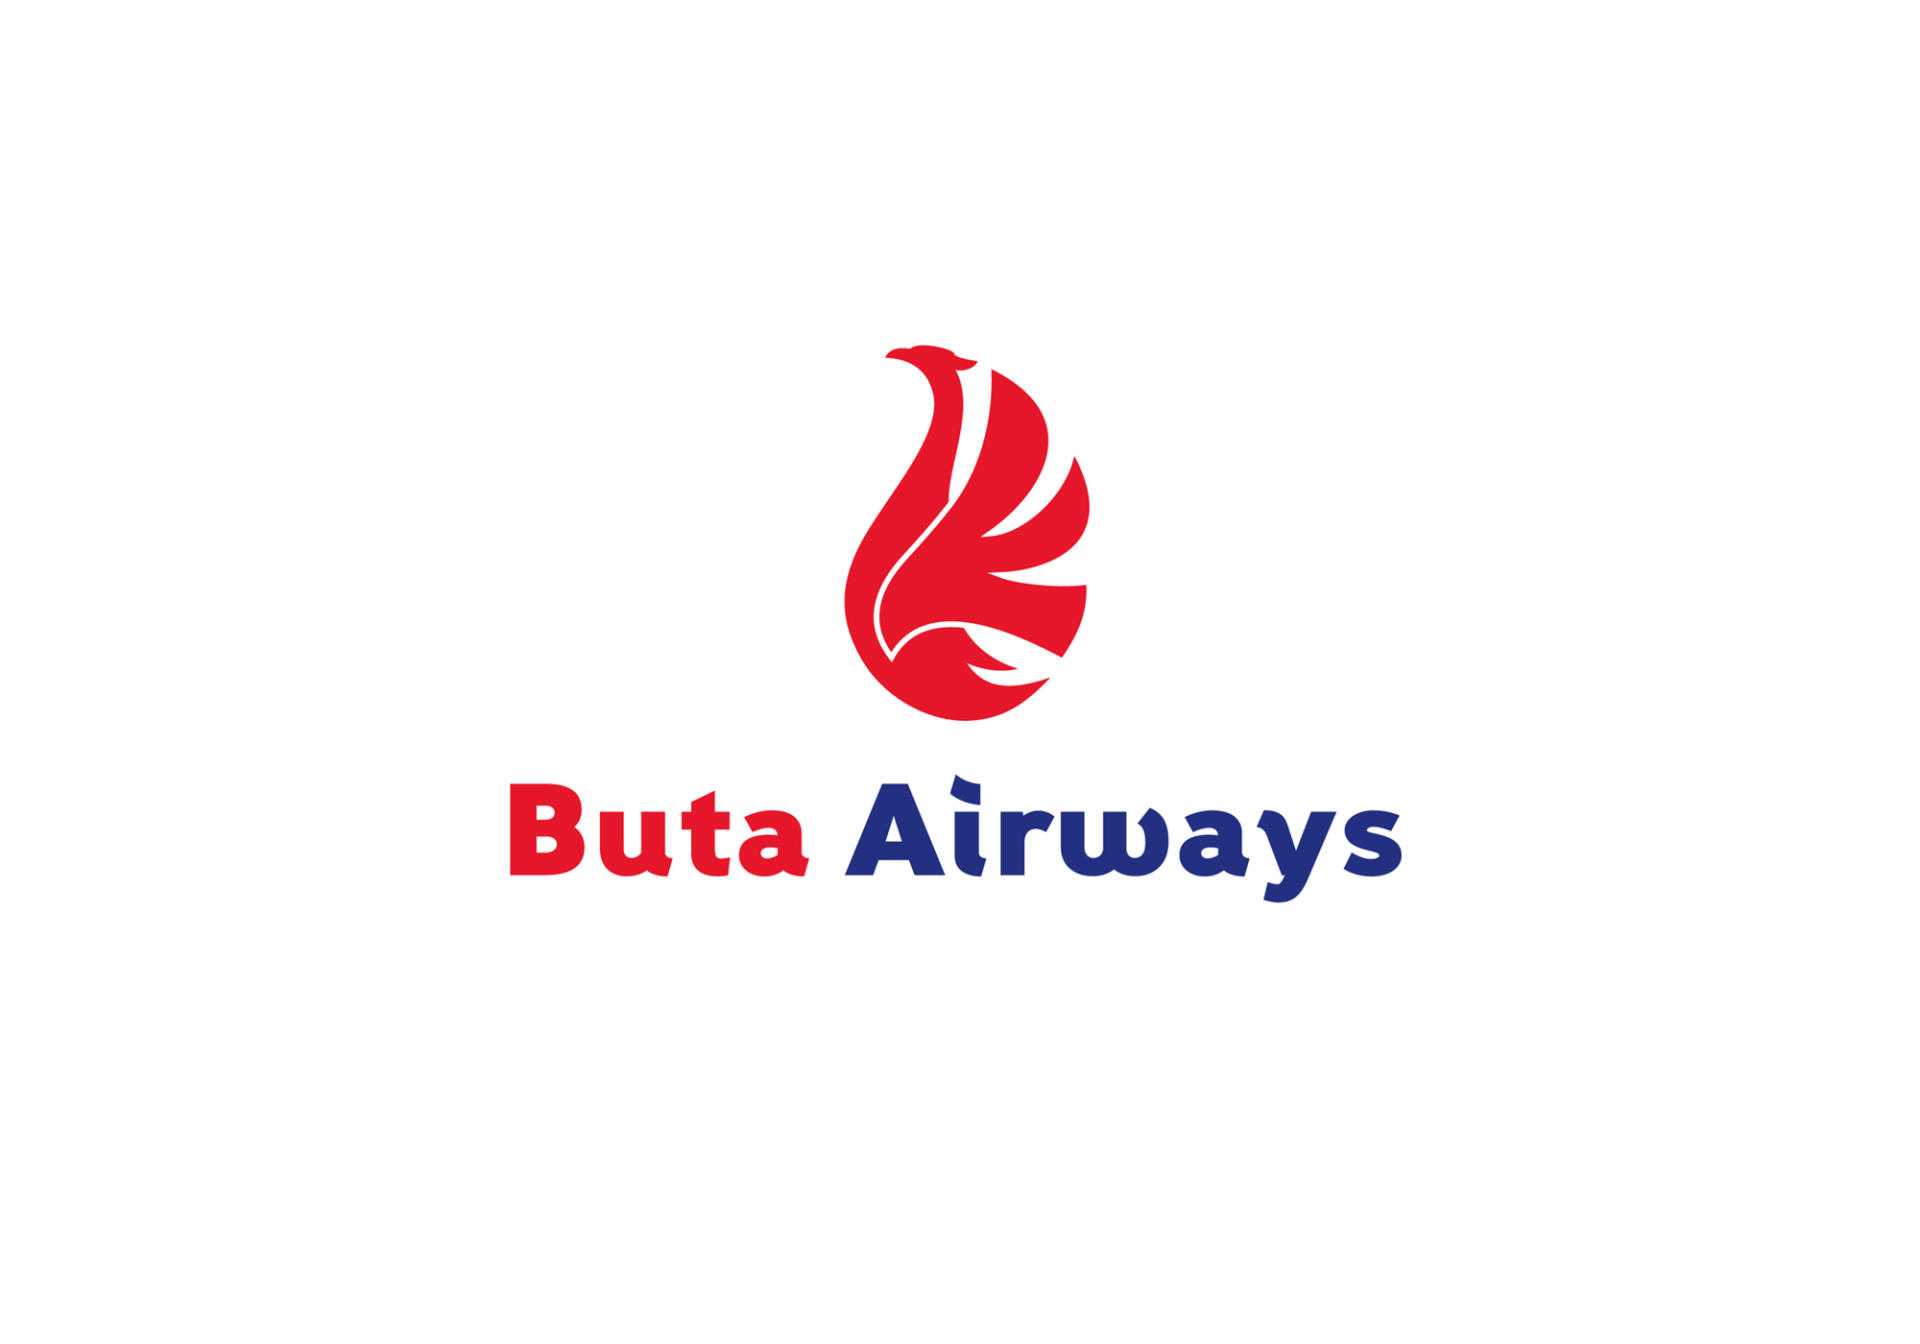 BUTA AIRWAYS livery, logo approved (PHOTO)